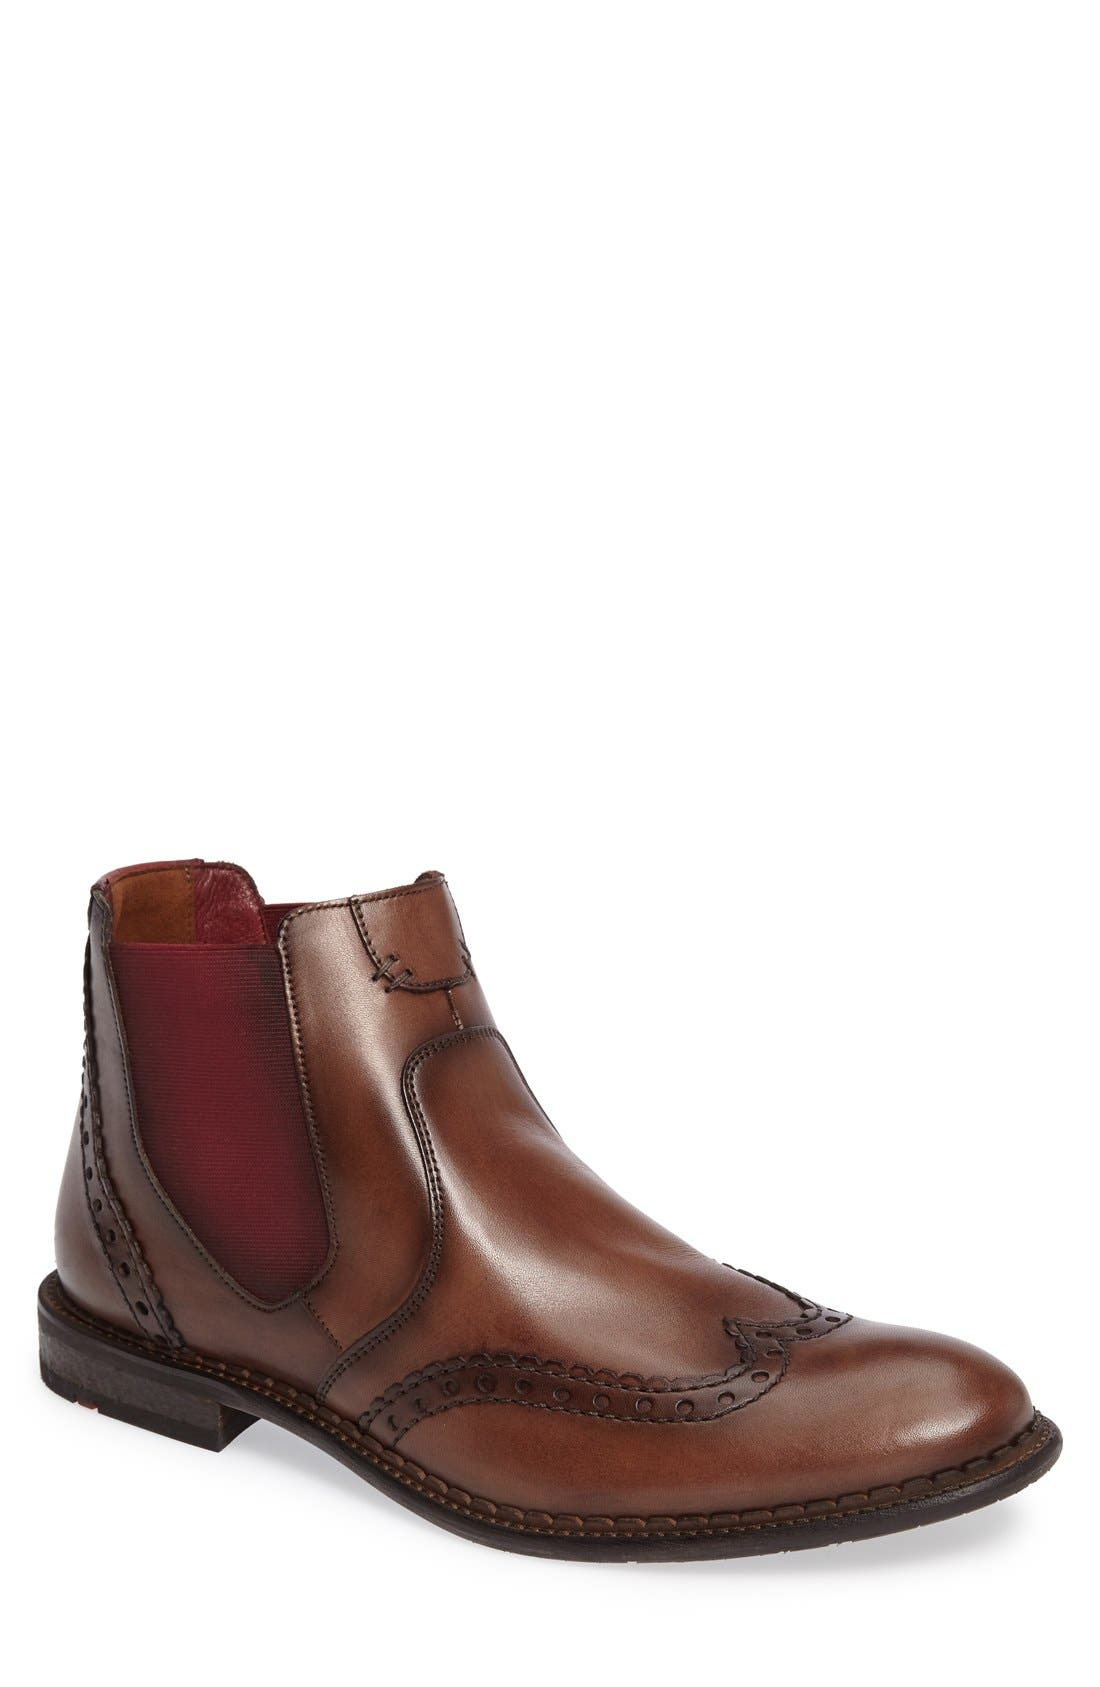 Grenoble Wingtip Chelsea Boot,                             Main thumbnail 1, color,                             200